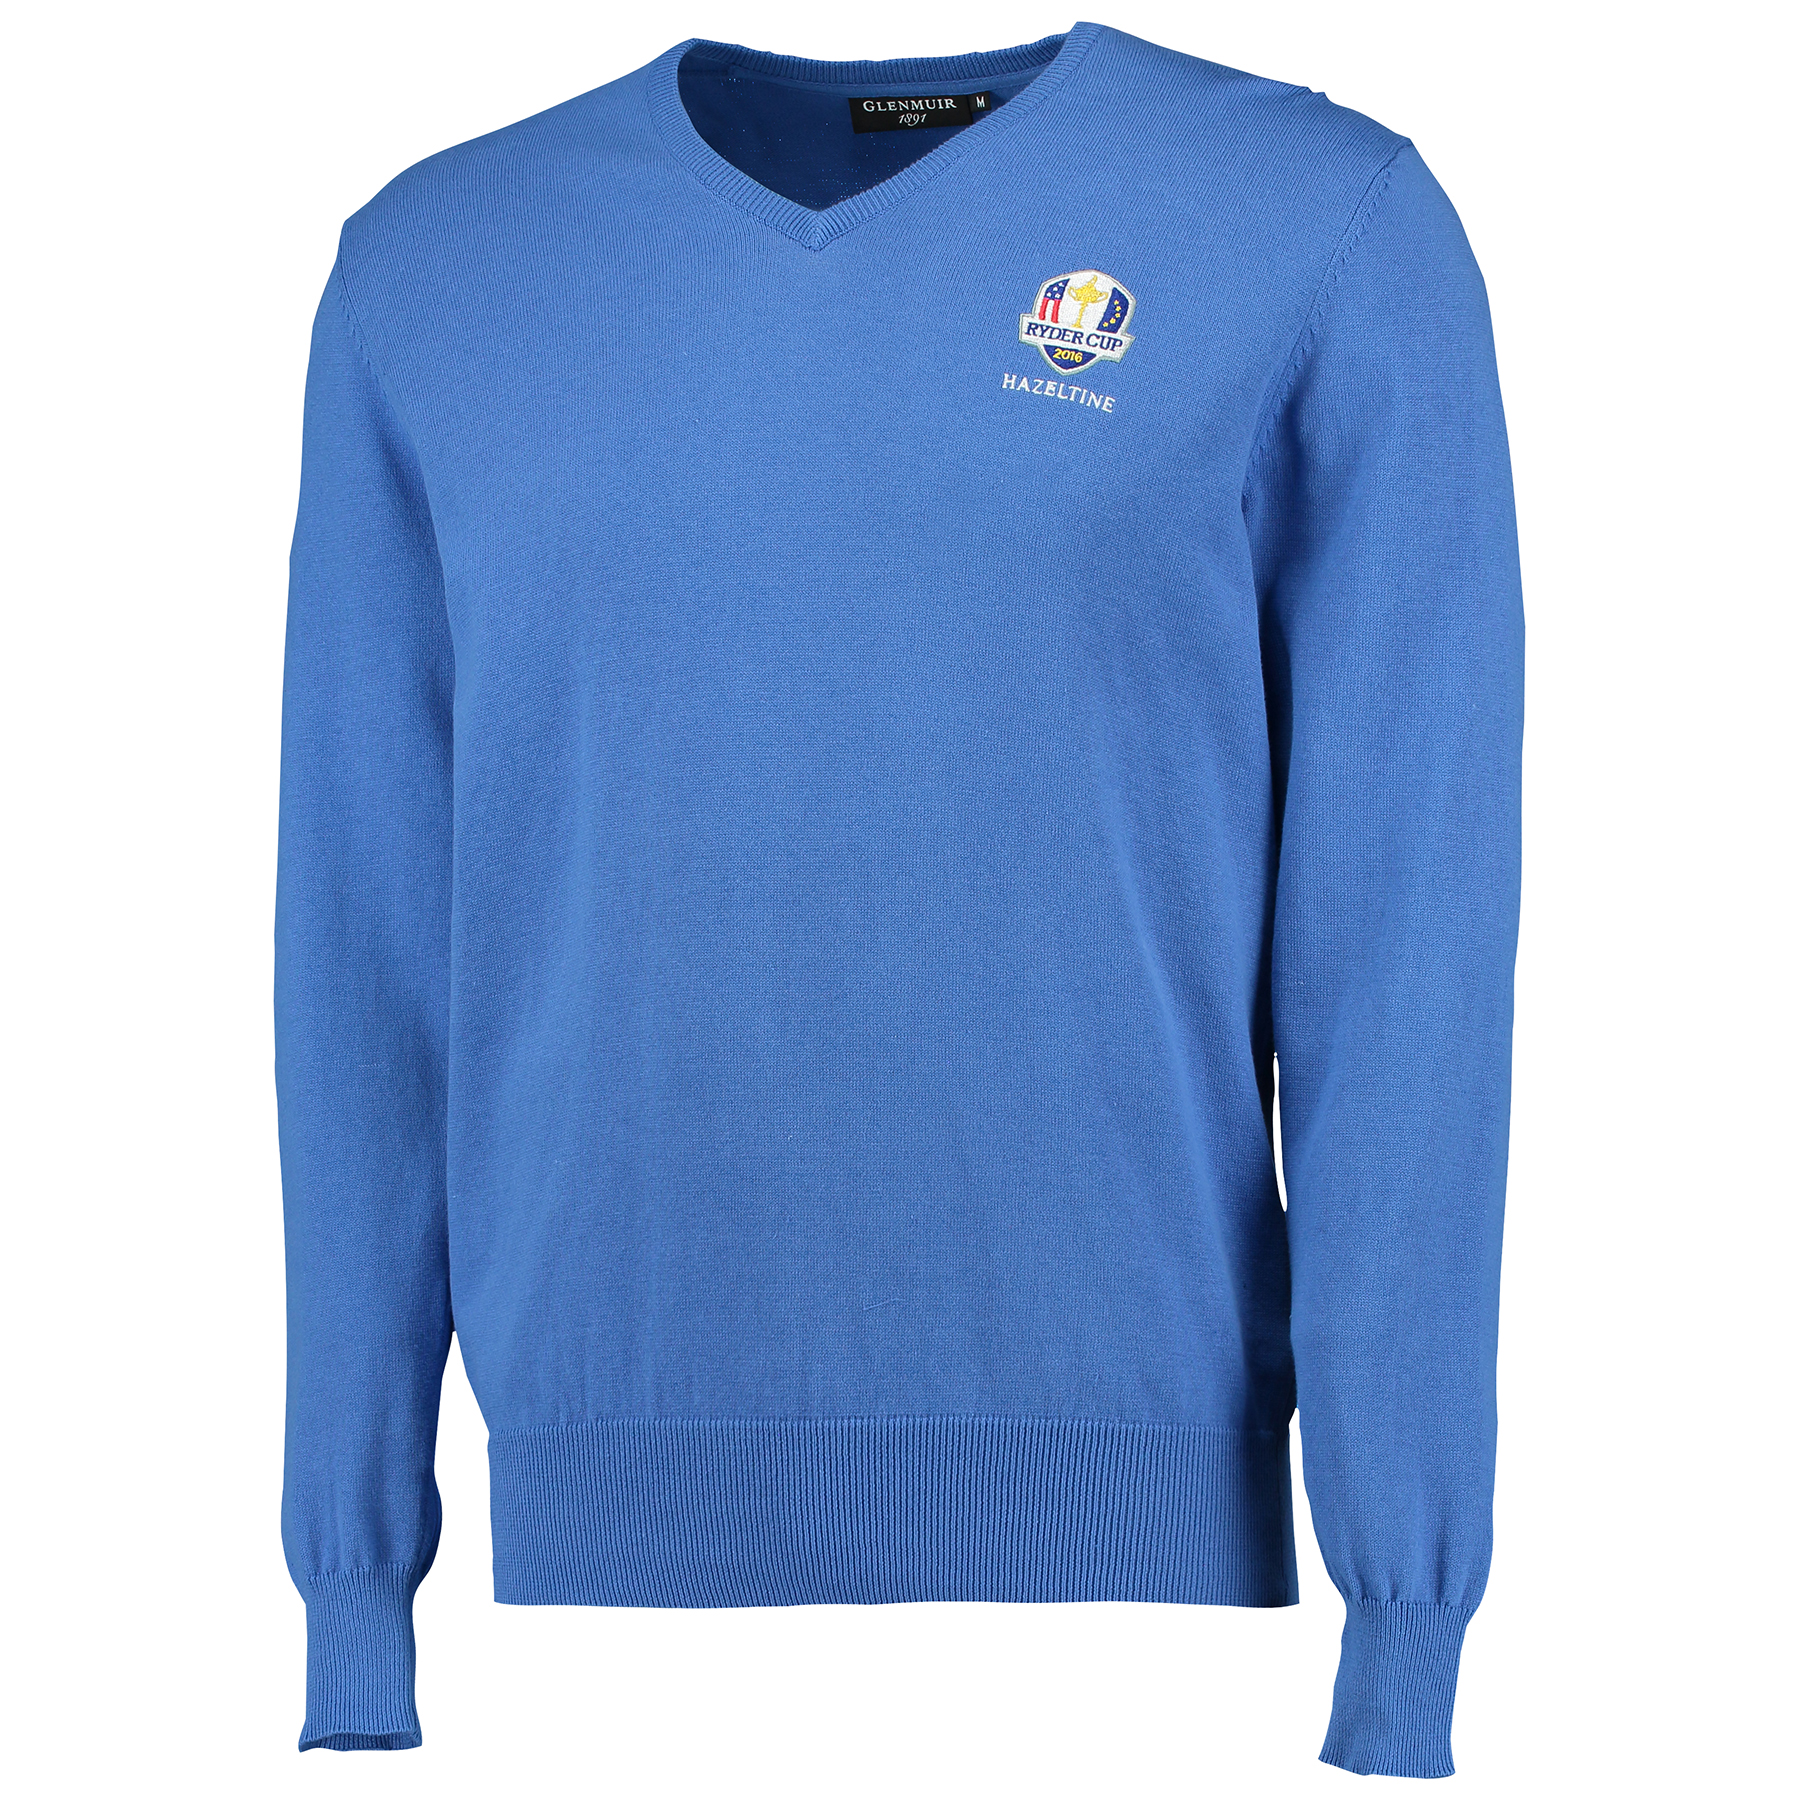 The 2016 Ryder Cup Glenmuir Eden V-Neck Cotton Sweater - Tahiti